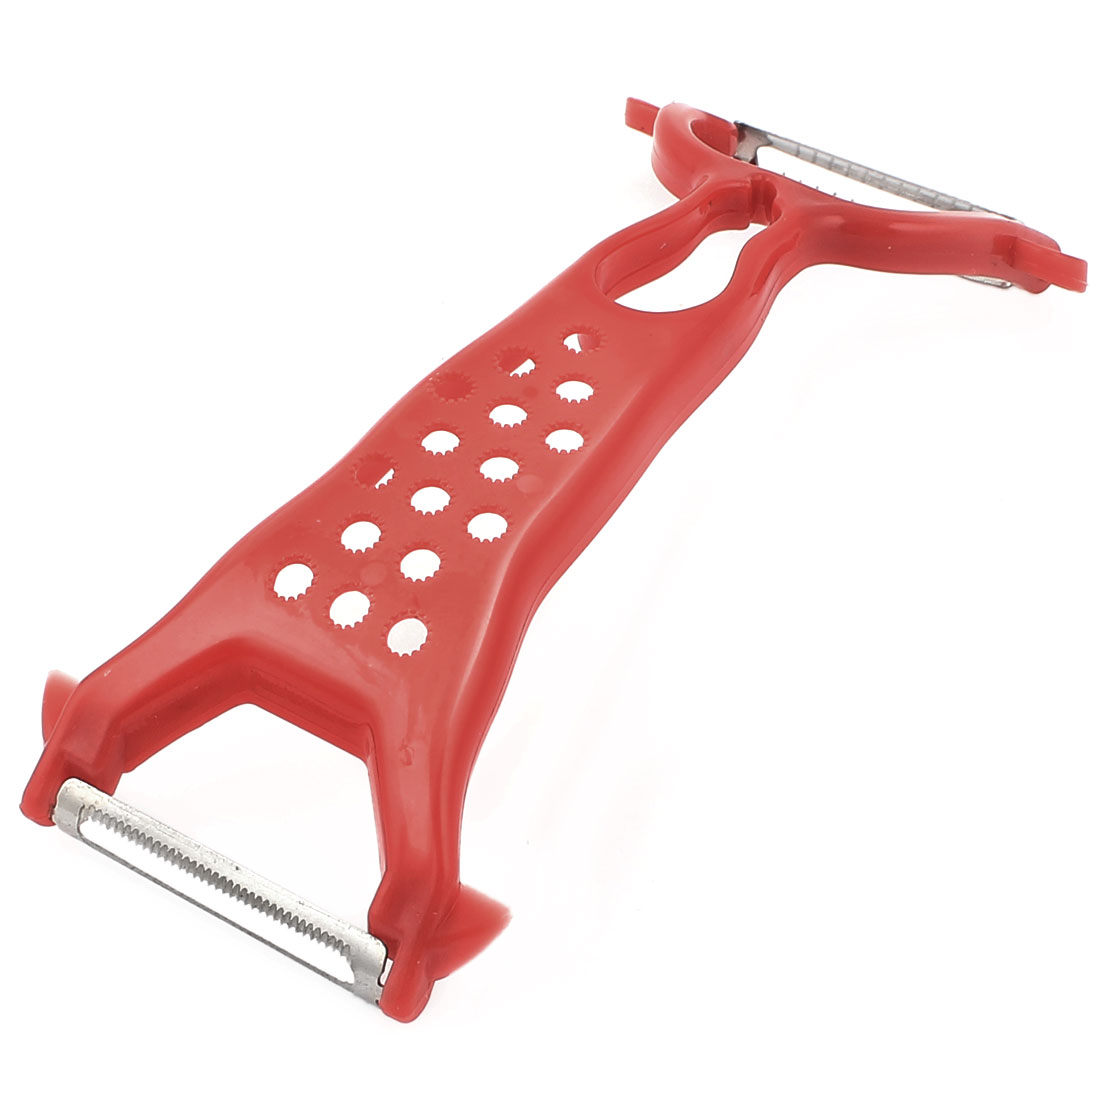 Arched Red Plastic Grip Double End Carrot Vegetable Fruit Slicer Peeler Shredder